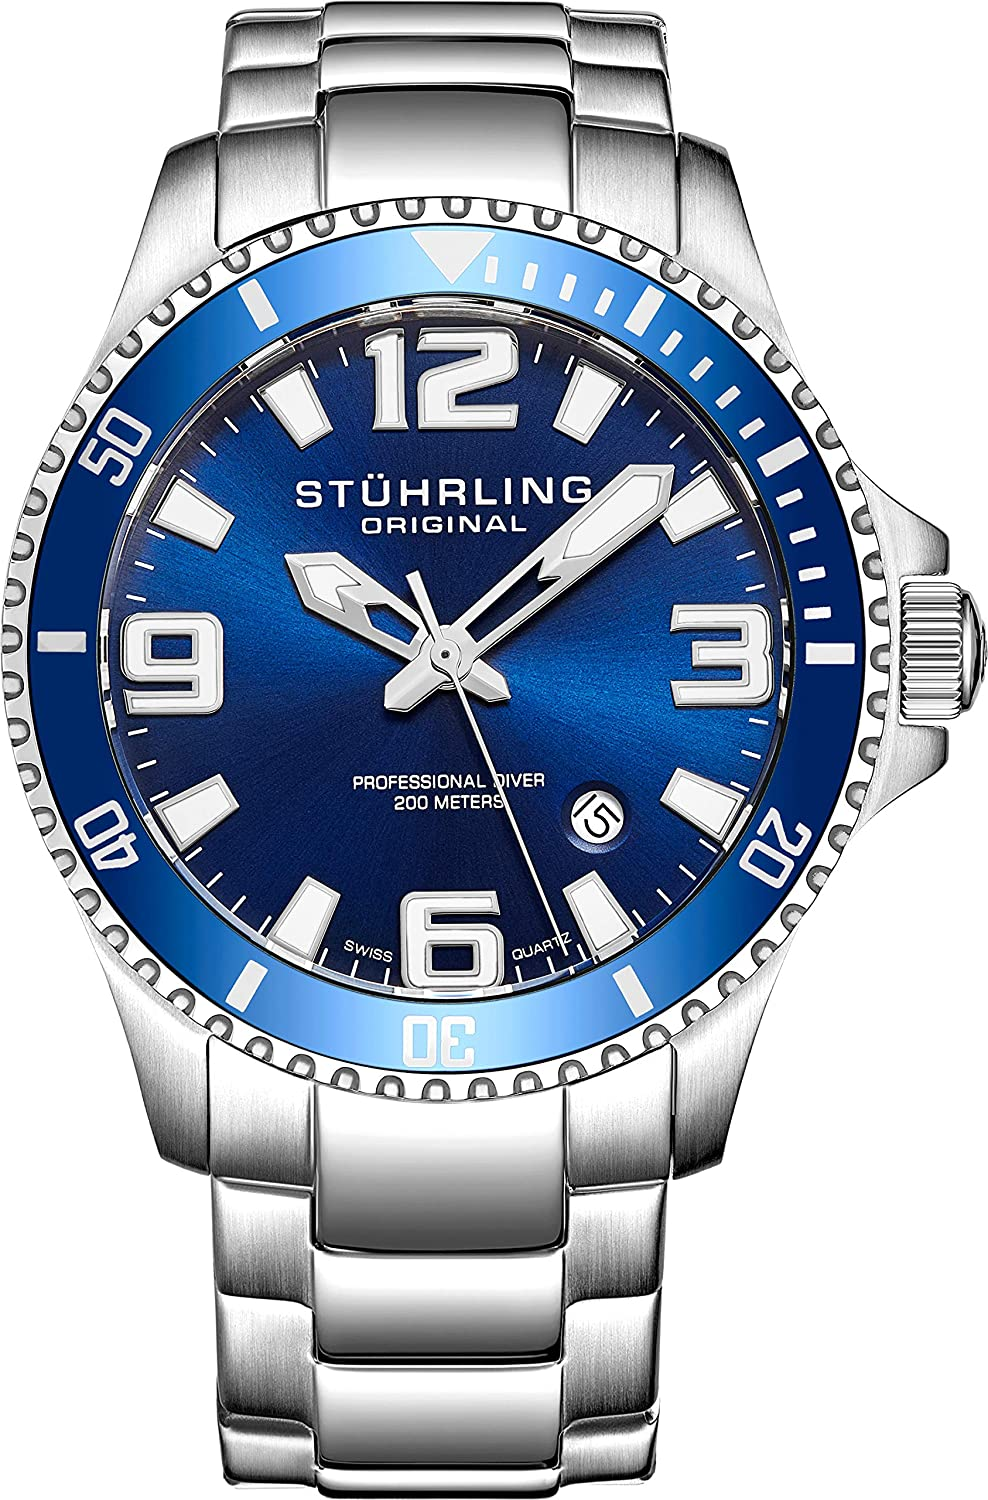 Stuhrling Original Mens Analog Dive Watch – Sports Watch Water Resistant 100 Meters – Watches for Men Aqua-Diver Stainless Steel Link Bracelet Mens Watches Collection